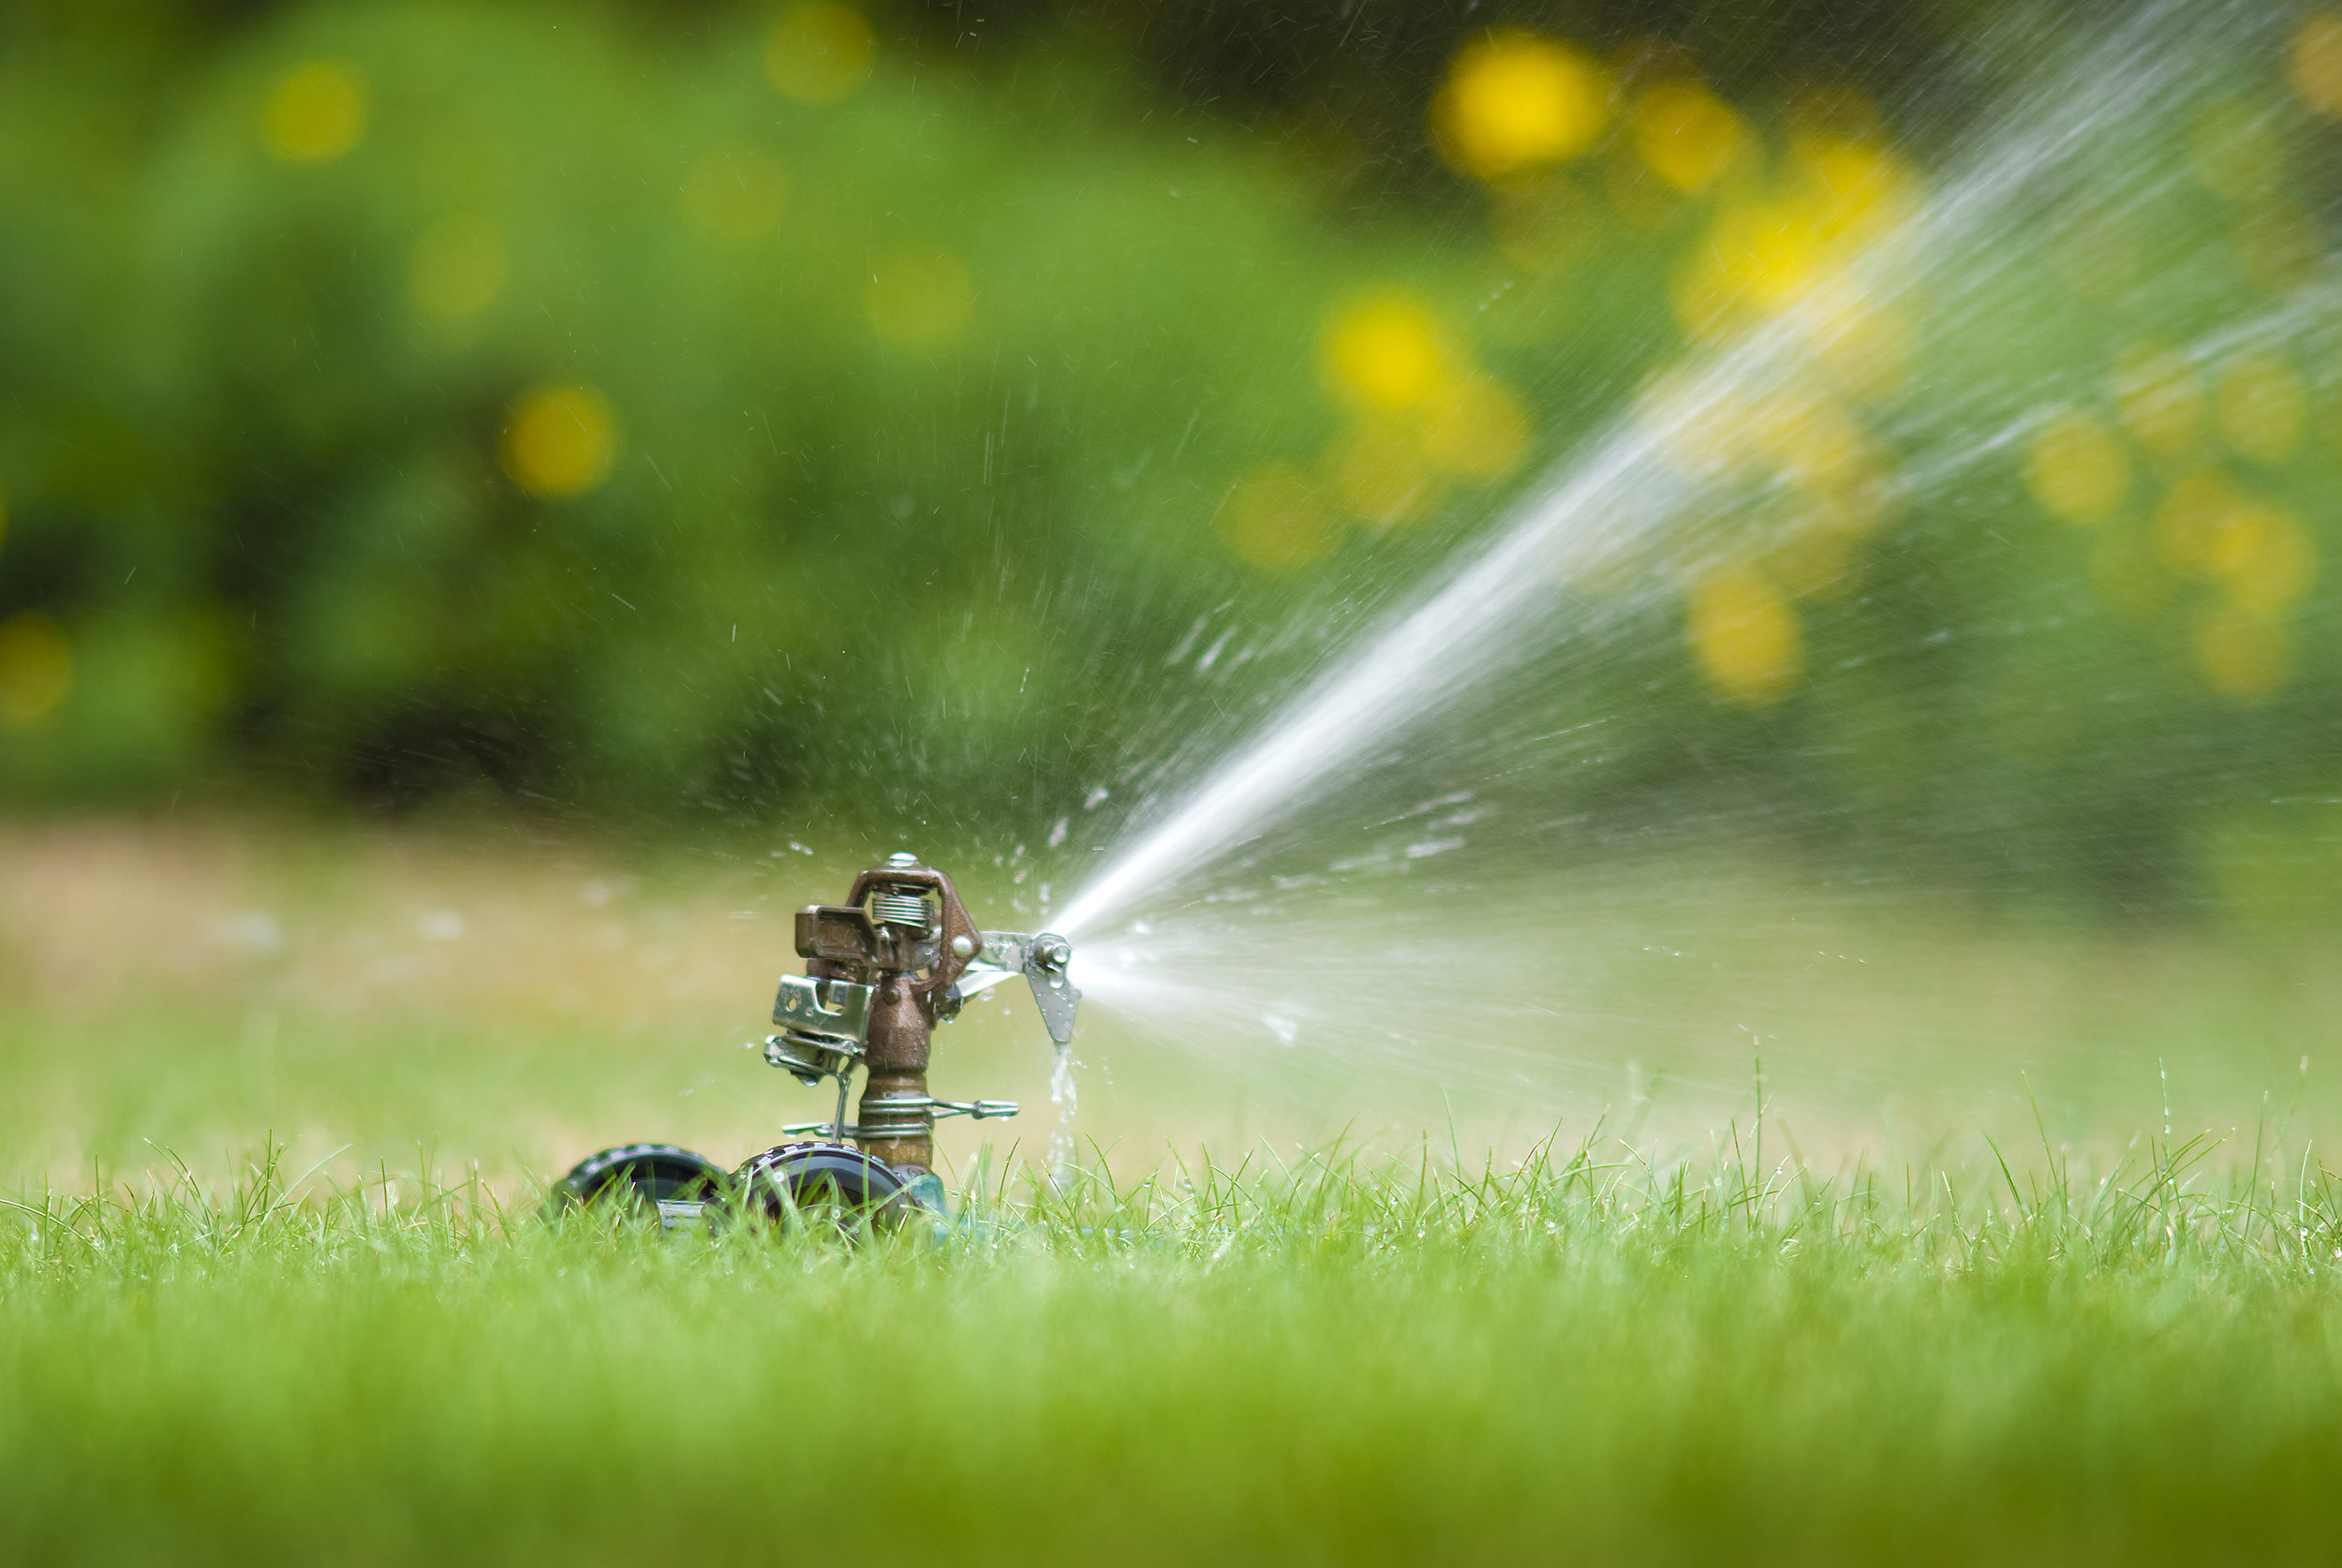 Helpful Links - Learn more about regulated fees on your water bill, water conservation techniques, and hurricane preparedness here.